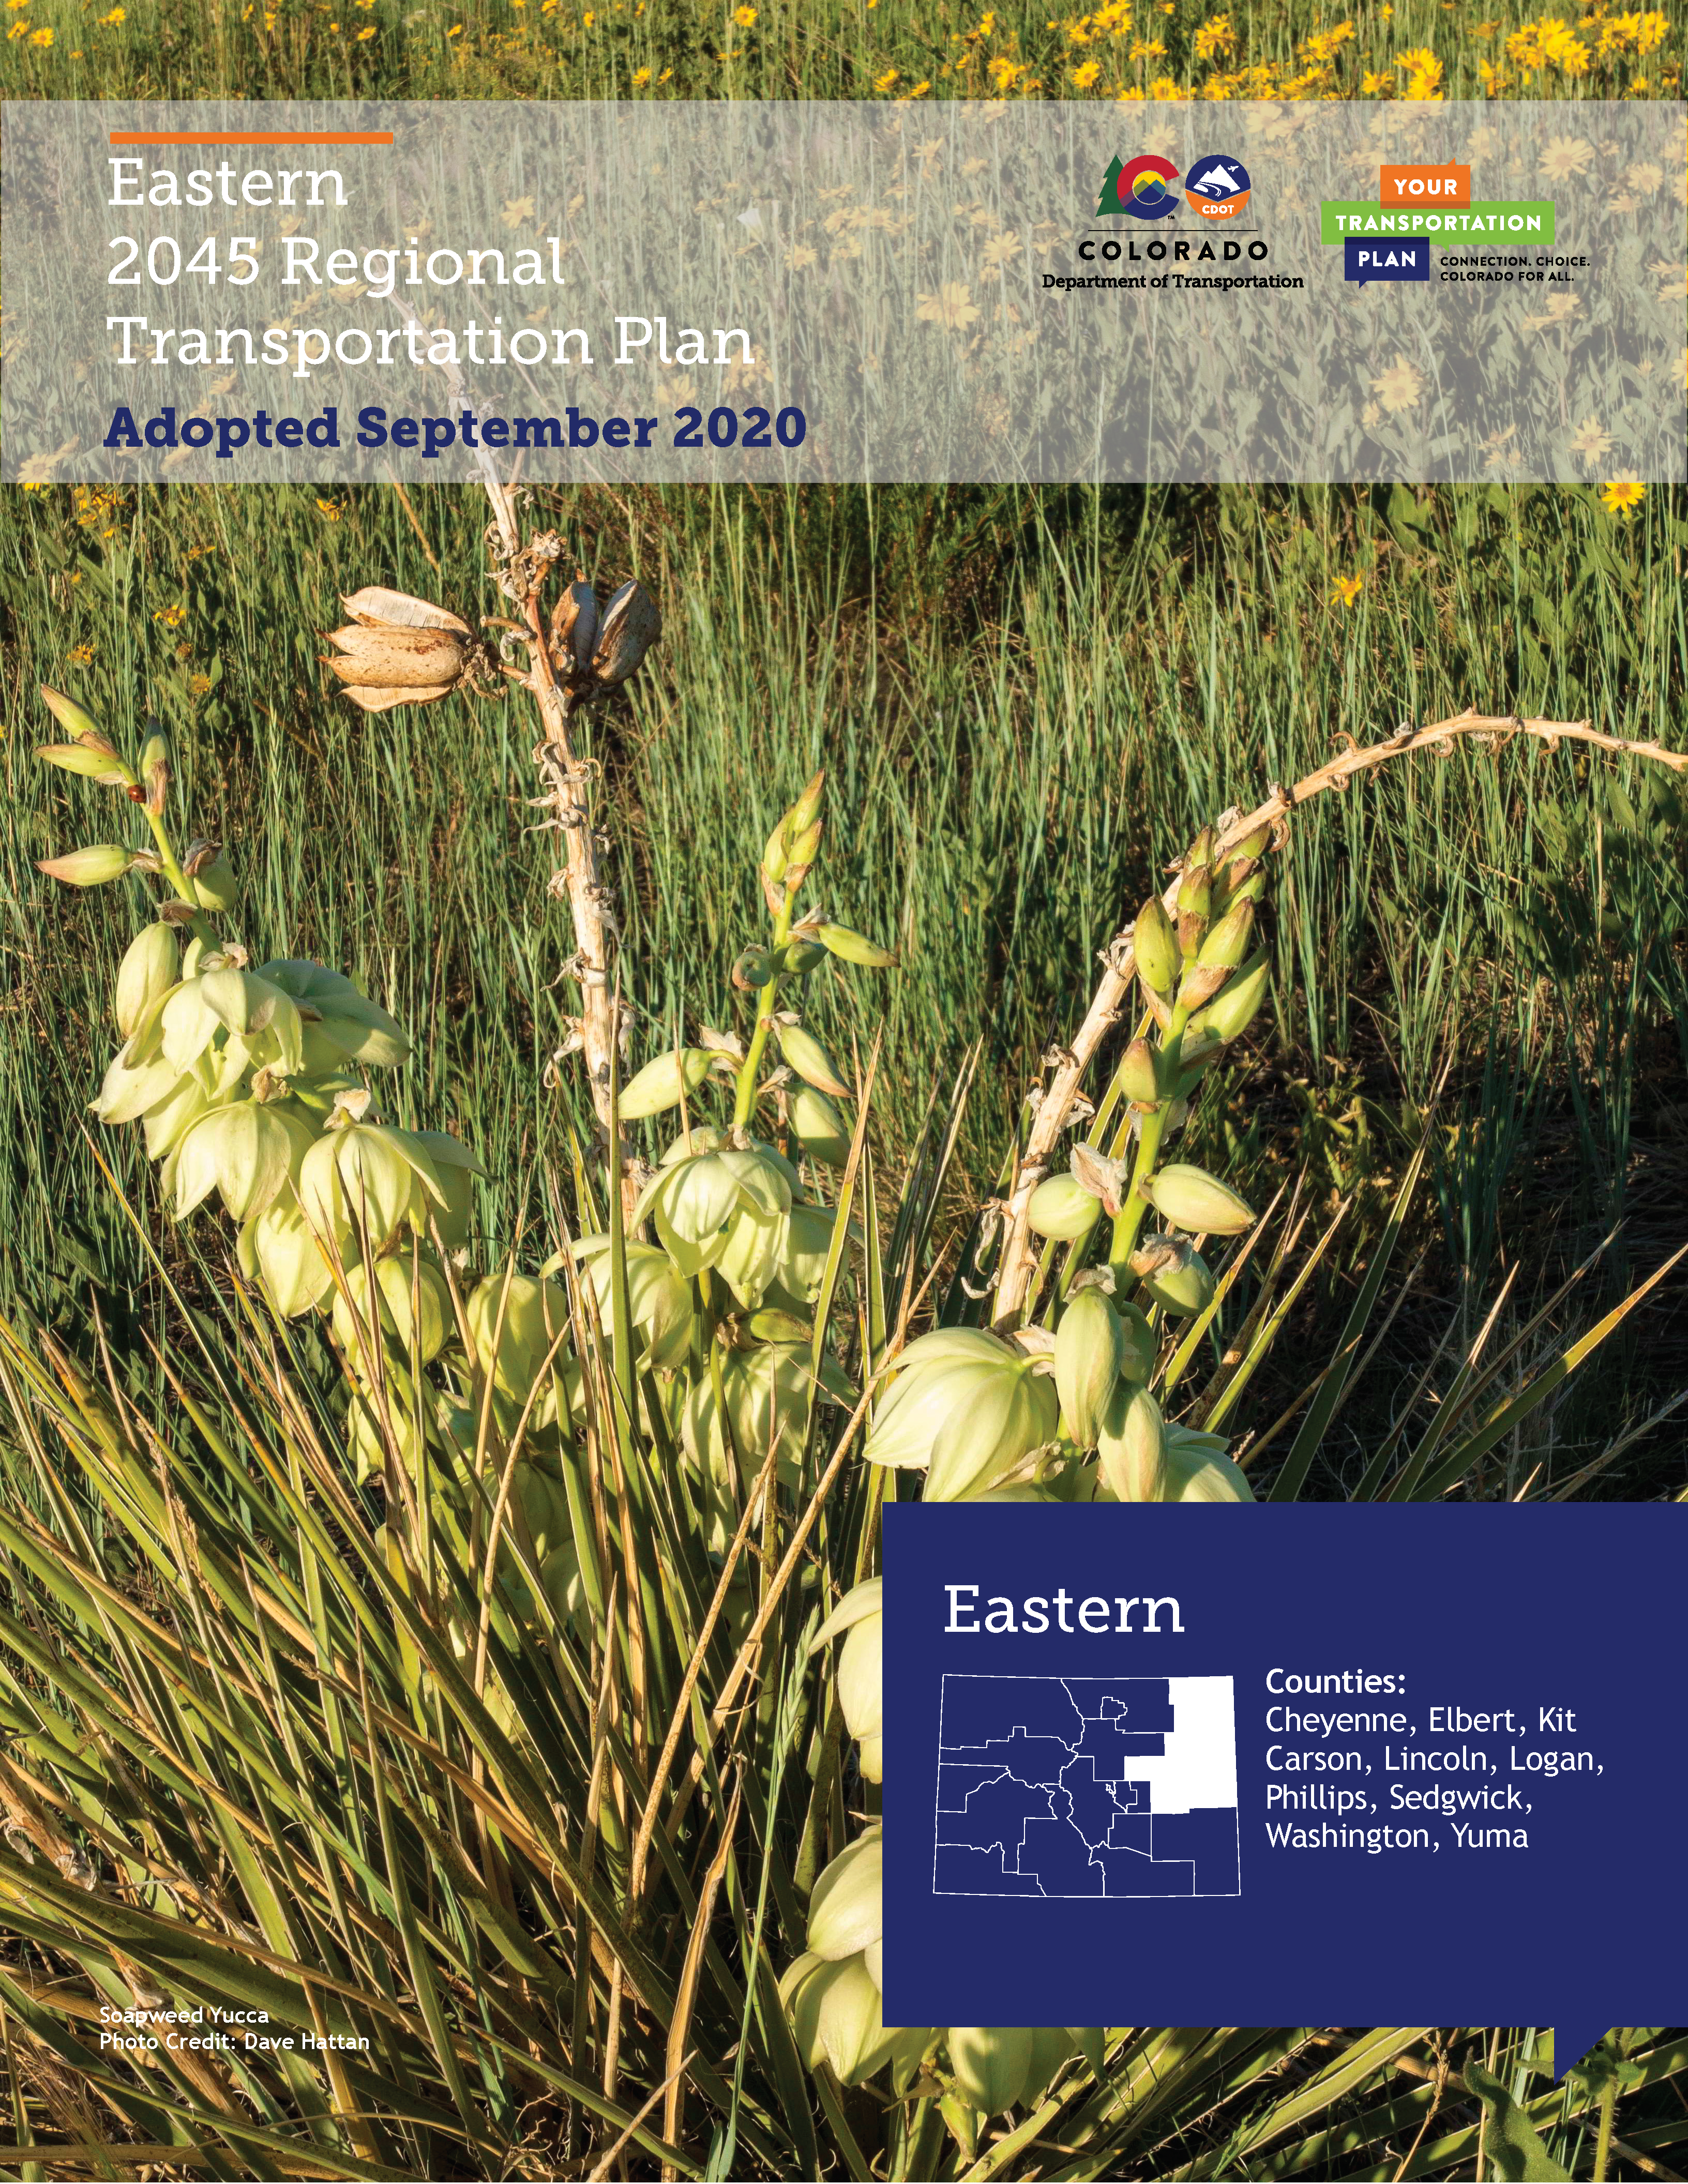 Eastern Regional Transportation Plan 2045